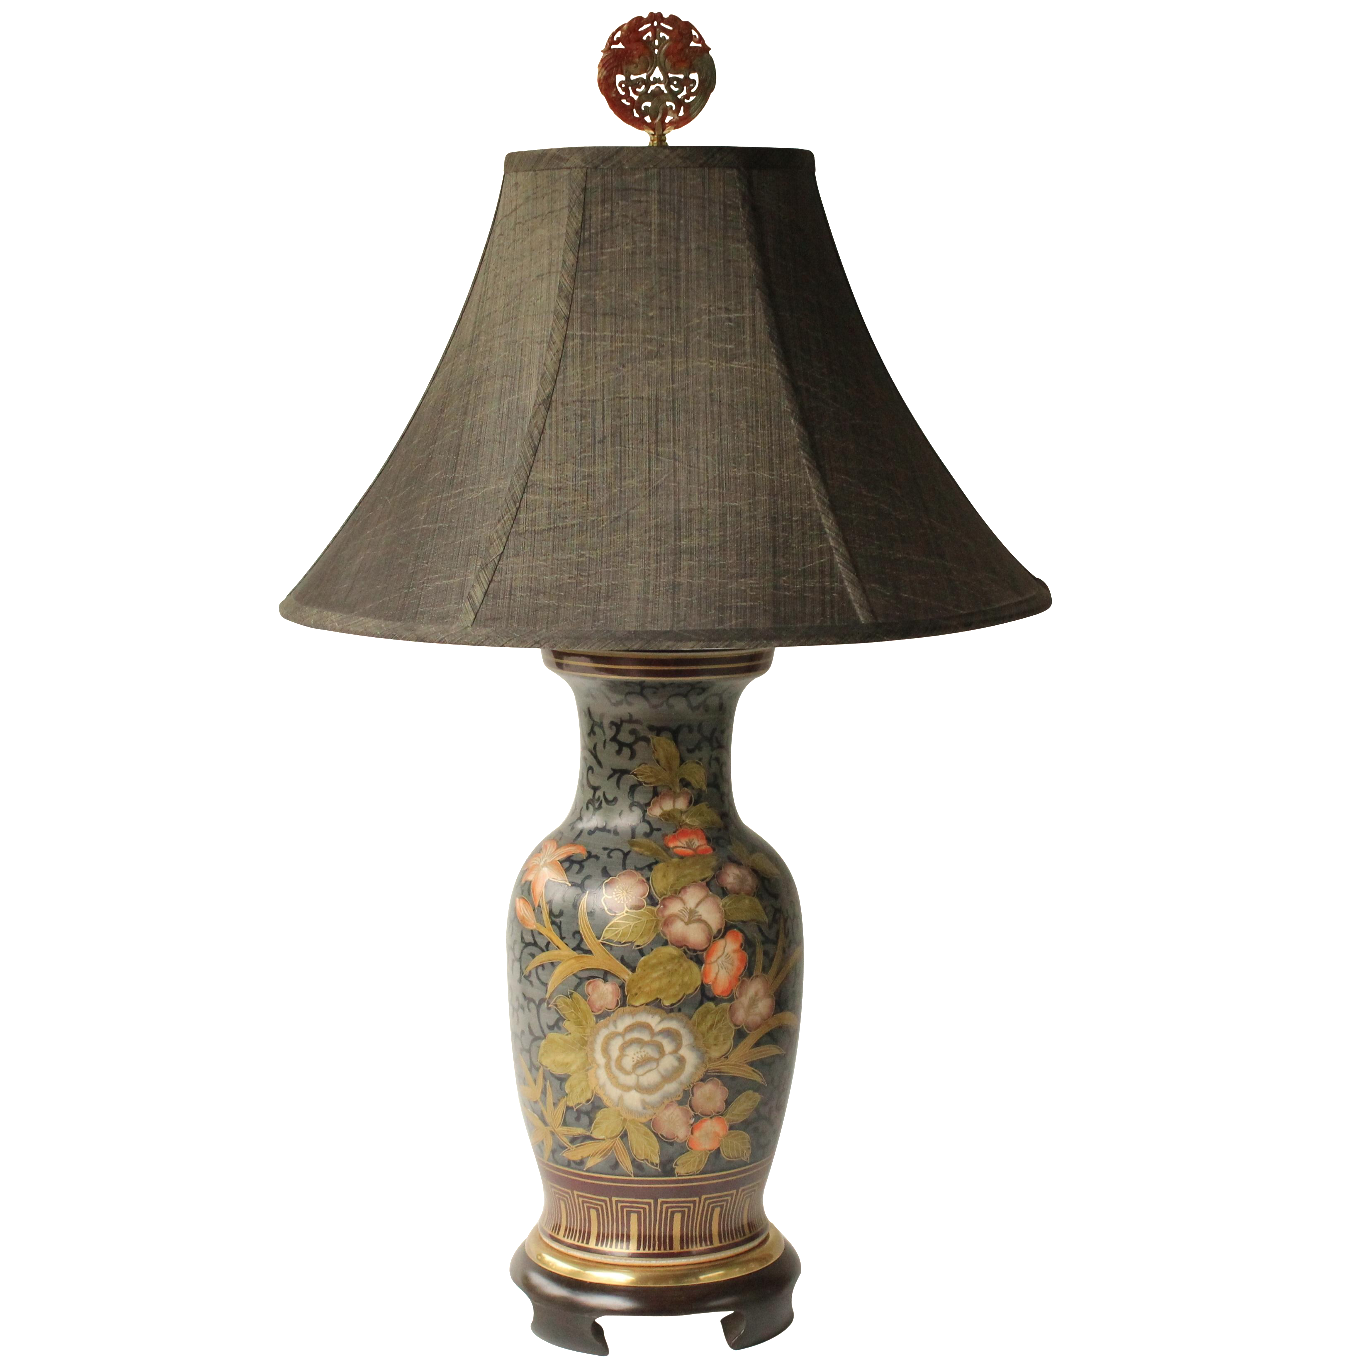 Frederick cooper floral vase table lamp chairish